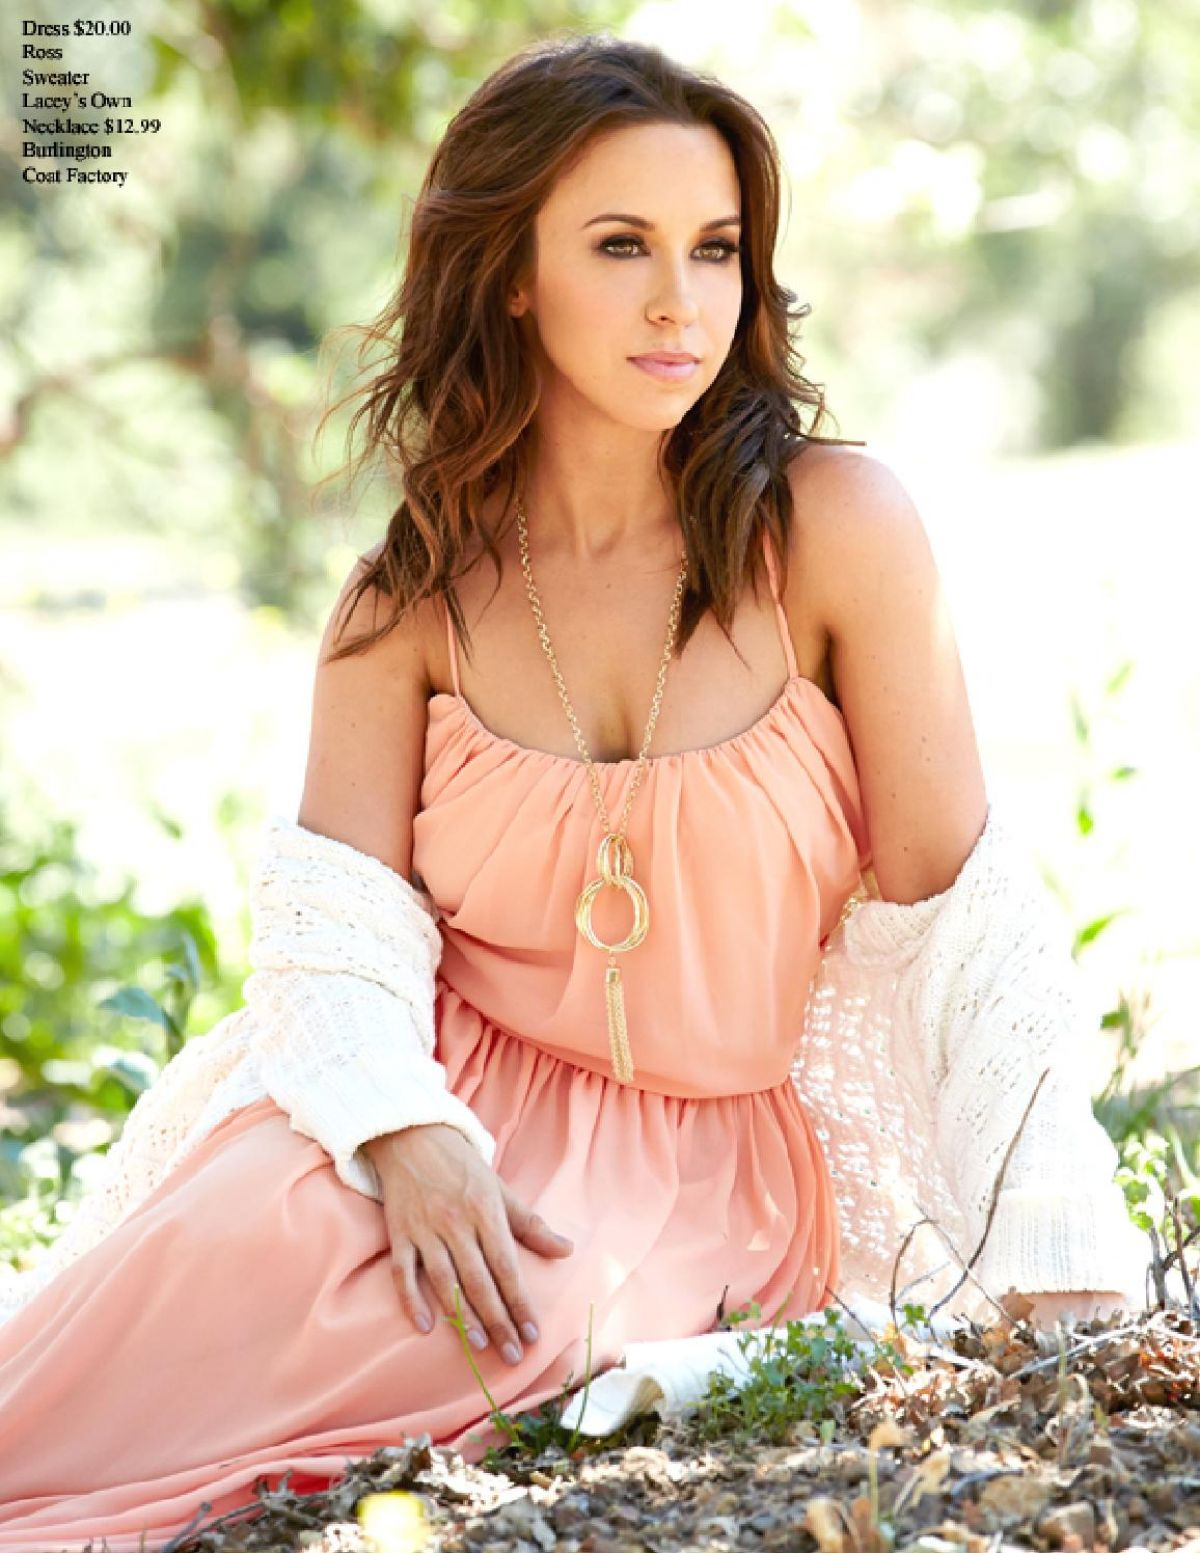 Actress Lacey Chabert in a Bikini - Thirst